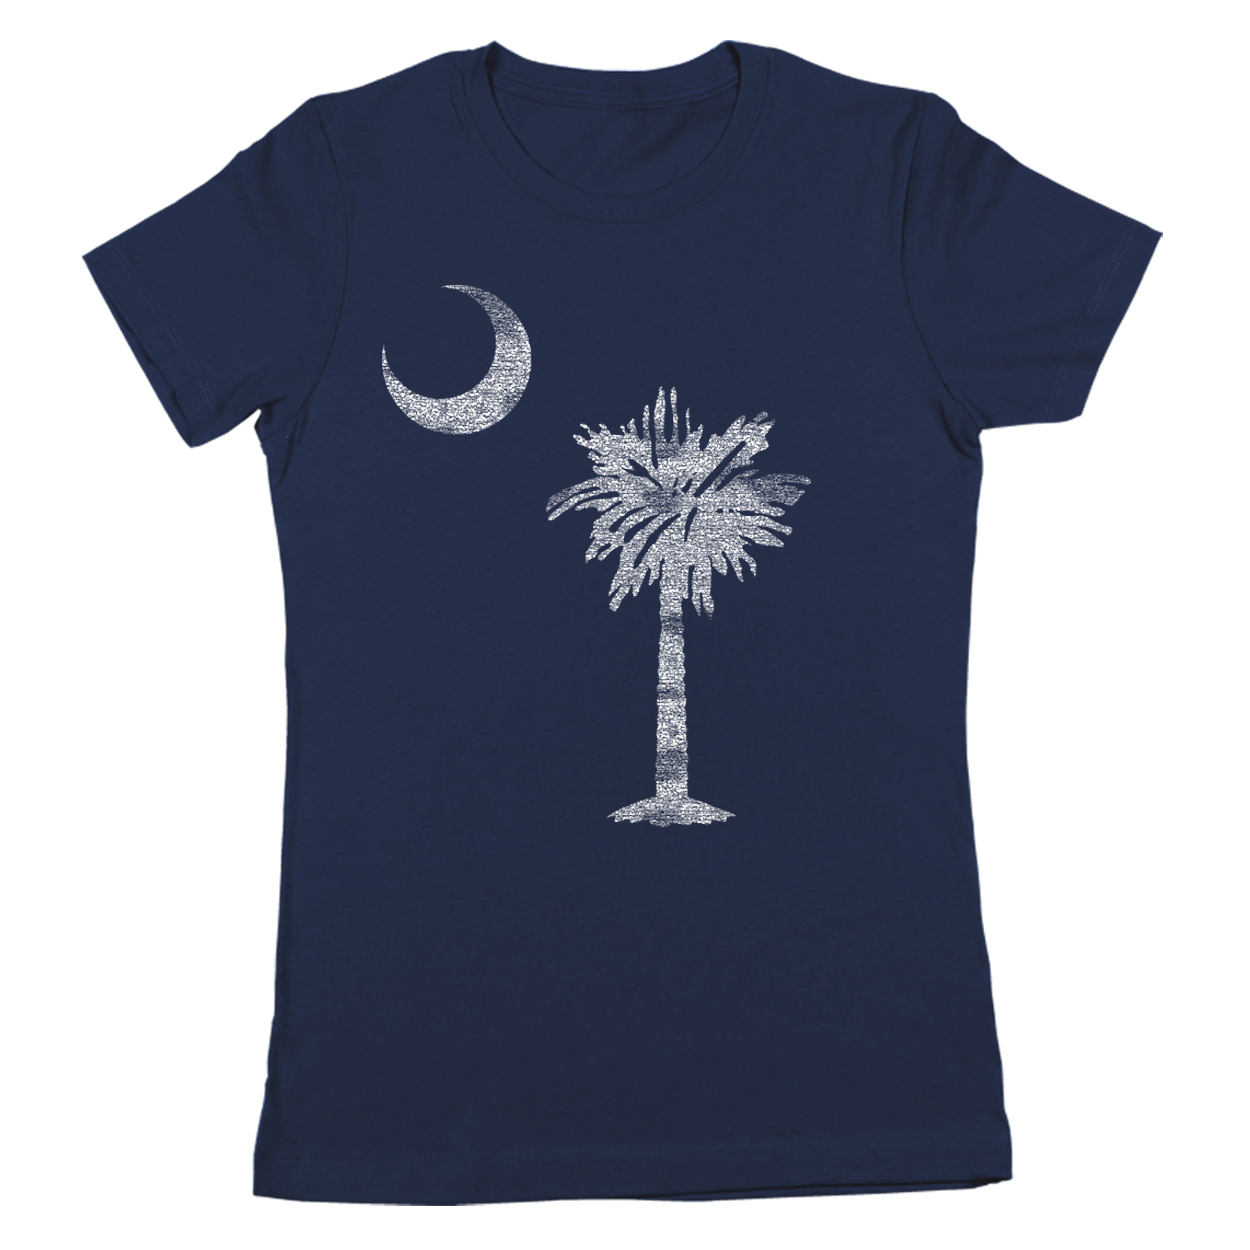 South Carolina Flag Small Navy Women's Jr Fit T-Shirt